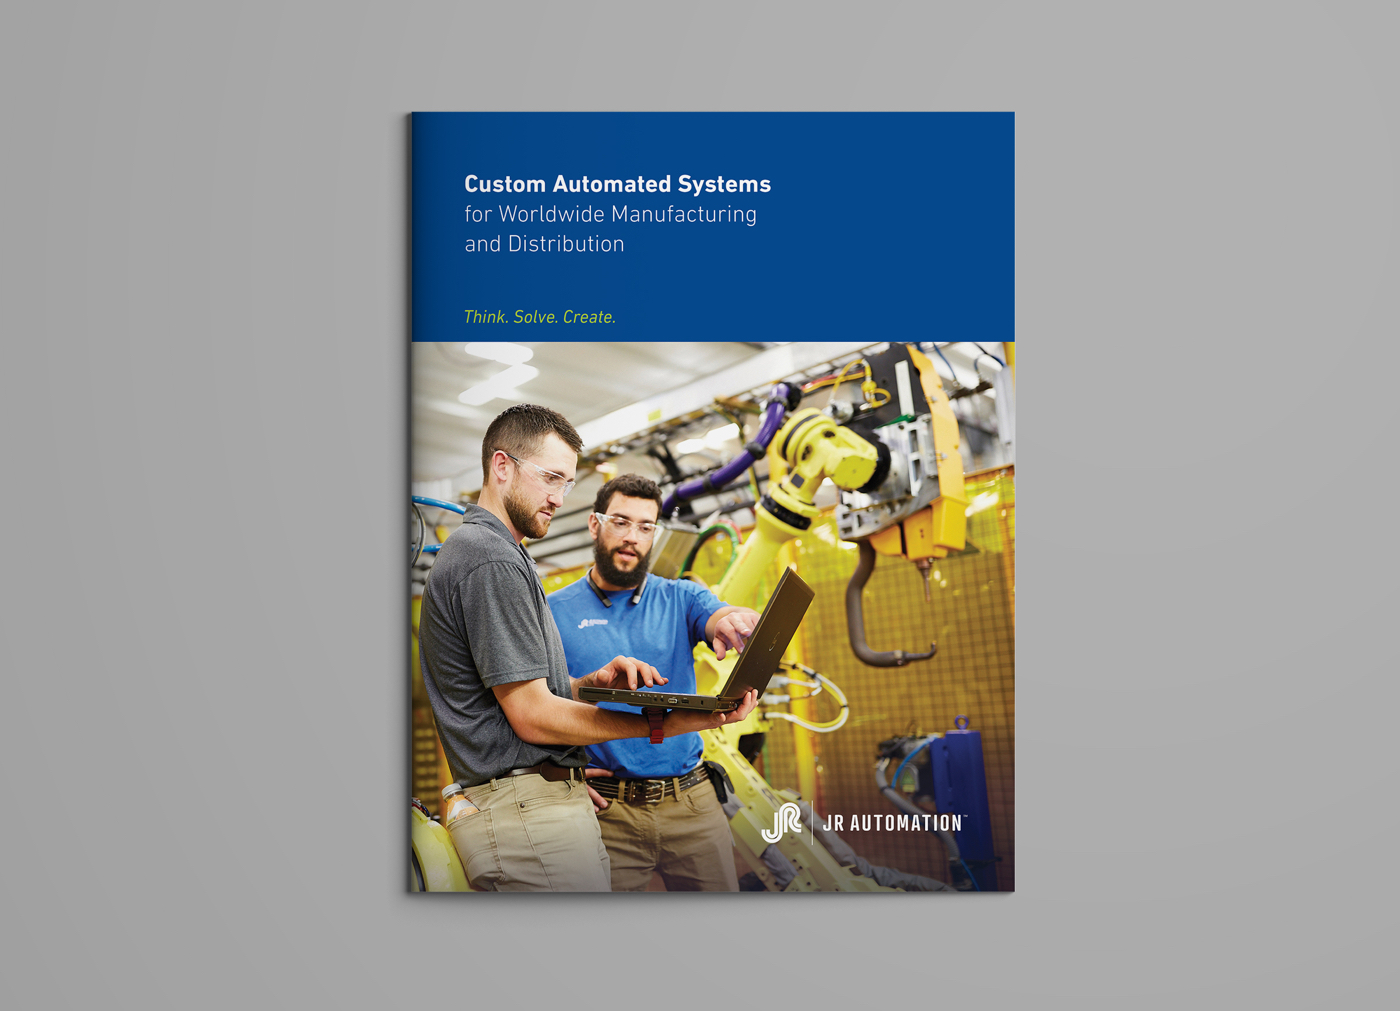 JR Automation Global Capabilities Brochure Cover by Blue Flame thinking